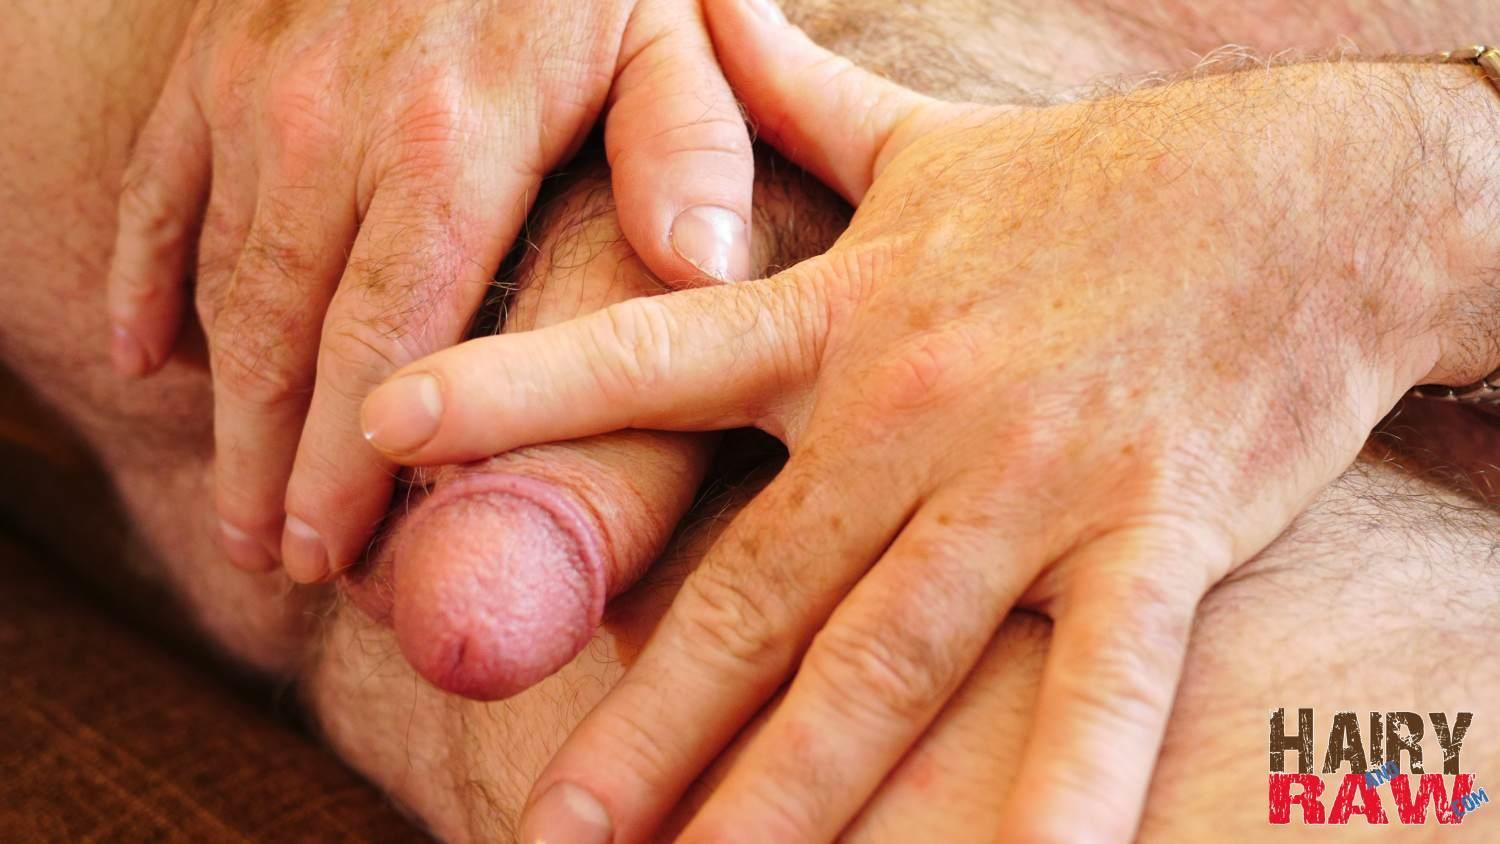 Hairy-and-Raw-Bo-Francis-Suited-Chubby-Hairy-Daddy-Jerking-Off-Thick-Cock-Twink-Jerking-Off-And-Eating-His-Own-Cum-Amateur-Gay-Porn-11 Suit and Tie Hairy Chubby Businessman Jerking His Hairy Cock